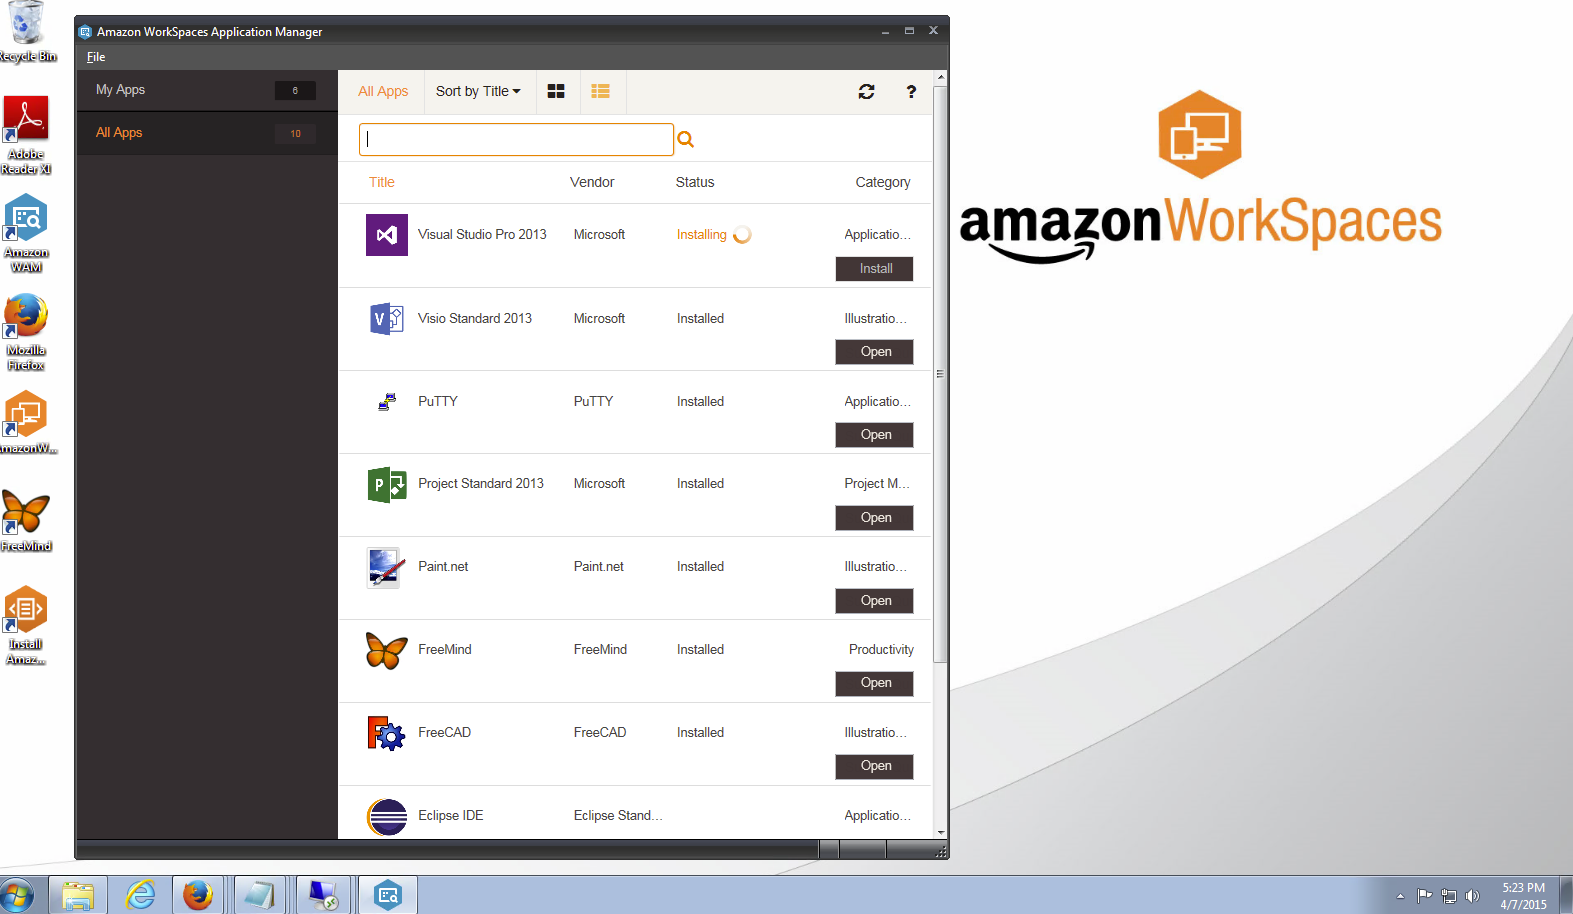 Users can select applications on their Amazon WorkSpace